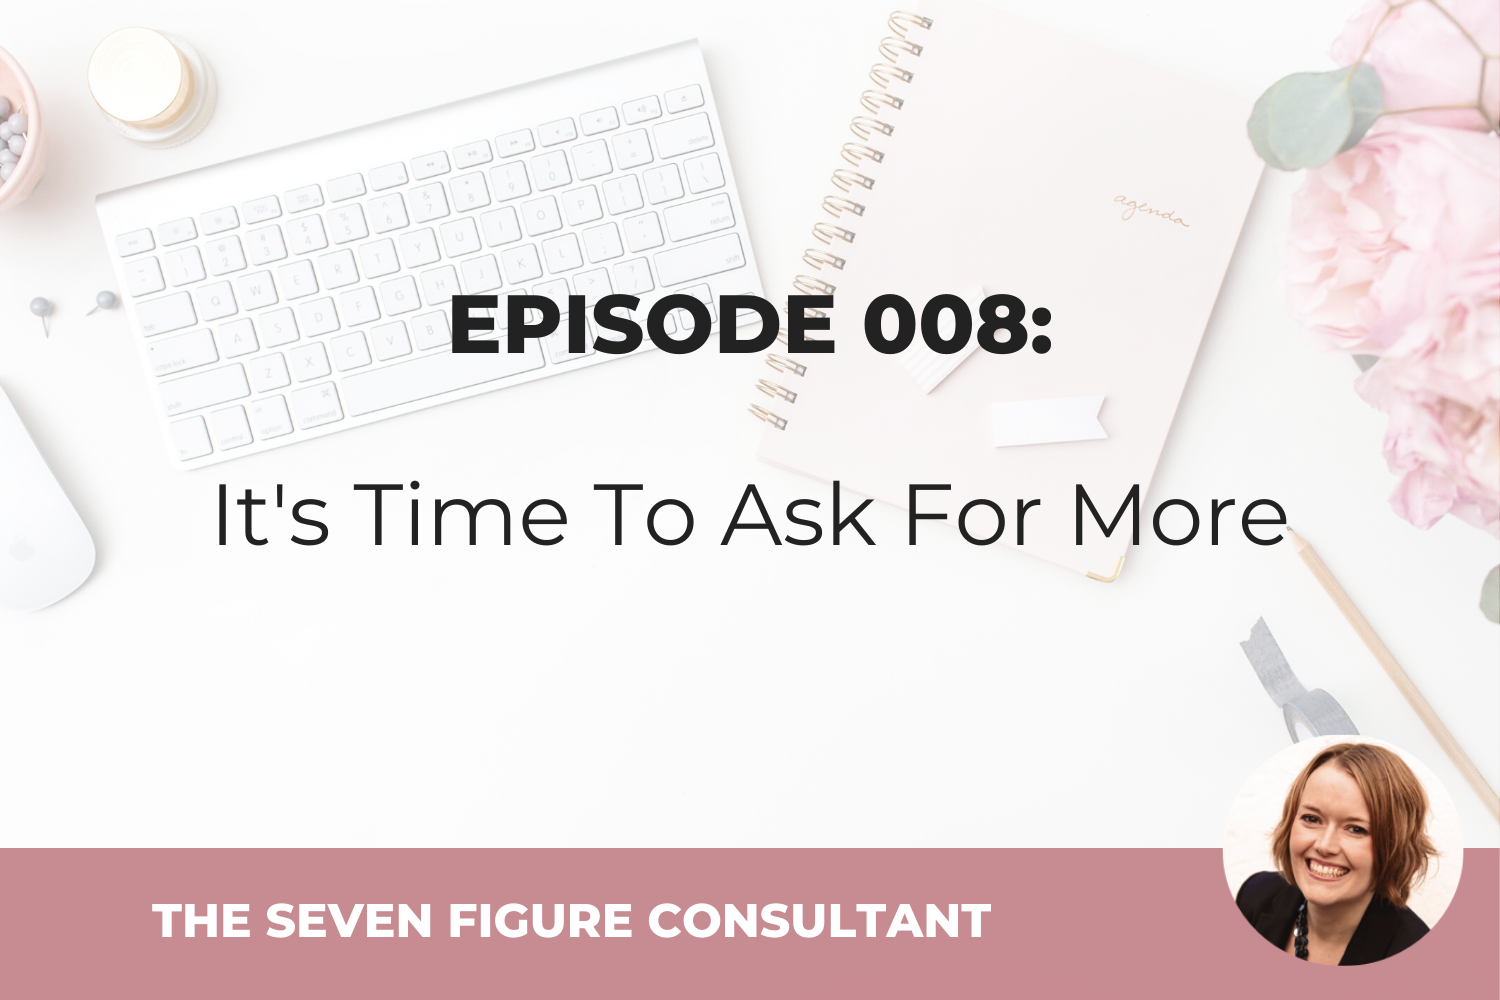 Episode 008: It's Time To Ask For More